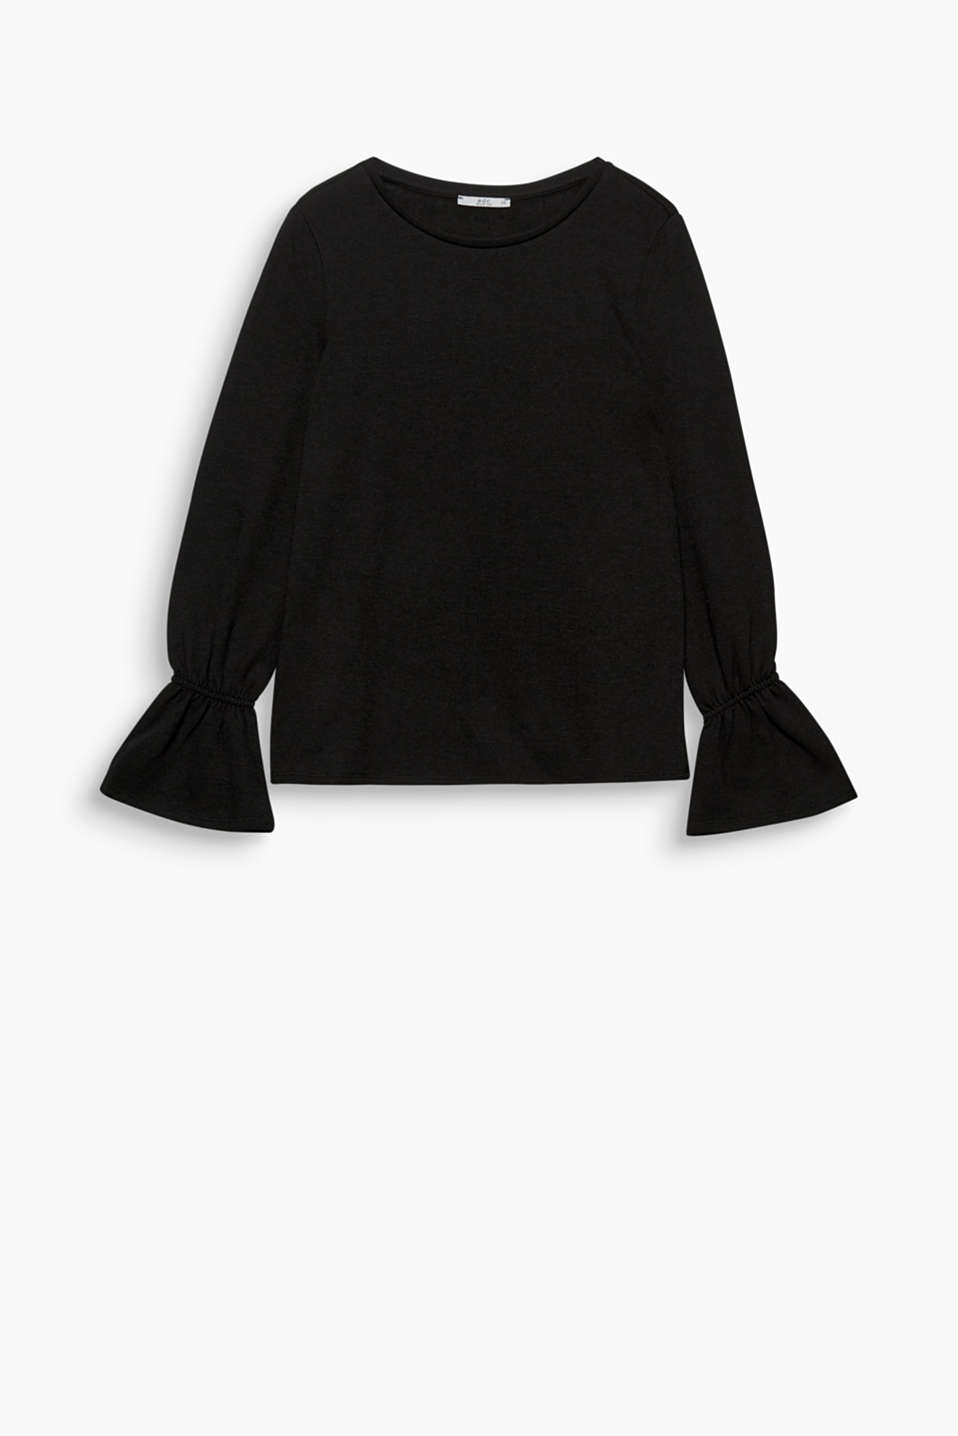 This soft sweatshirt gets a highly fashionable and feminine note from the flared sleeve hems.